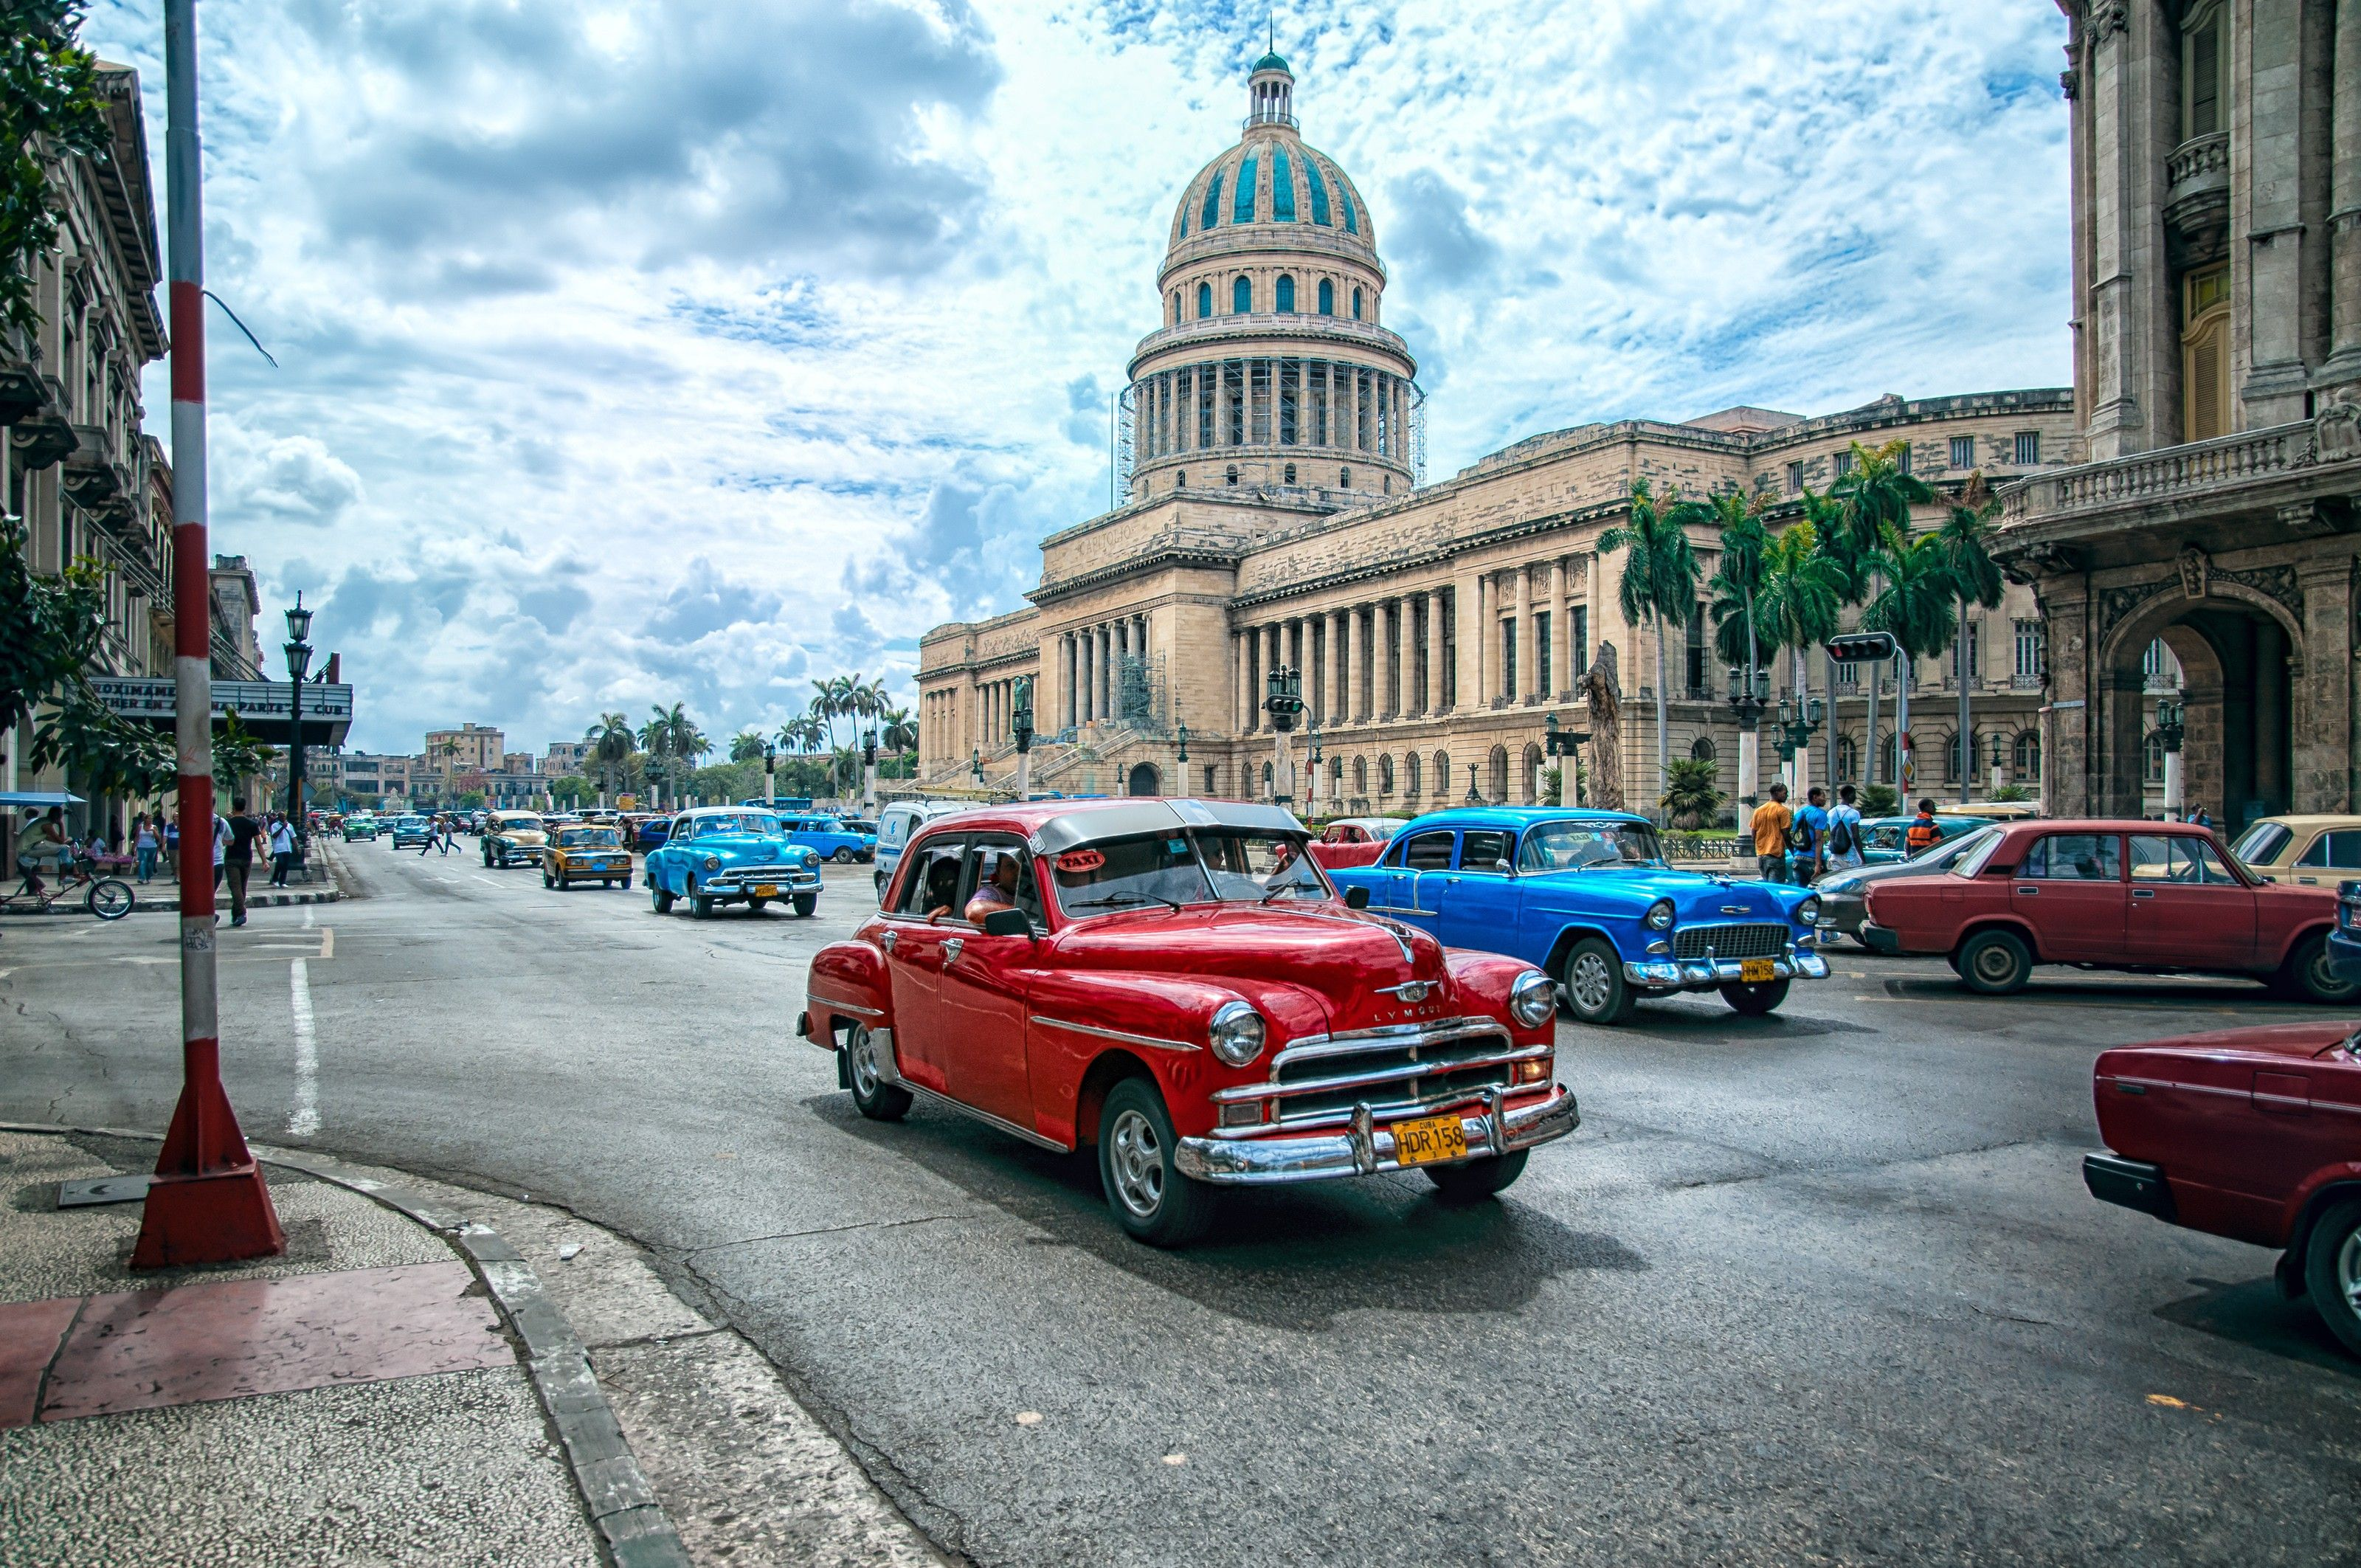 5 Cuba HD Wallpapers | Backgrounds - Wallpaper Abyss